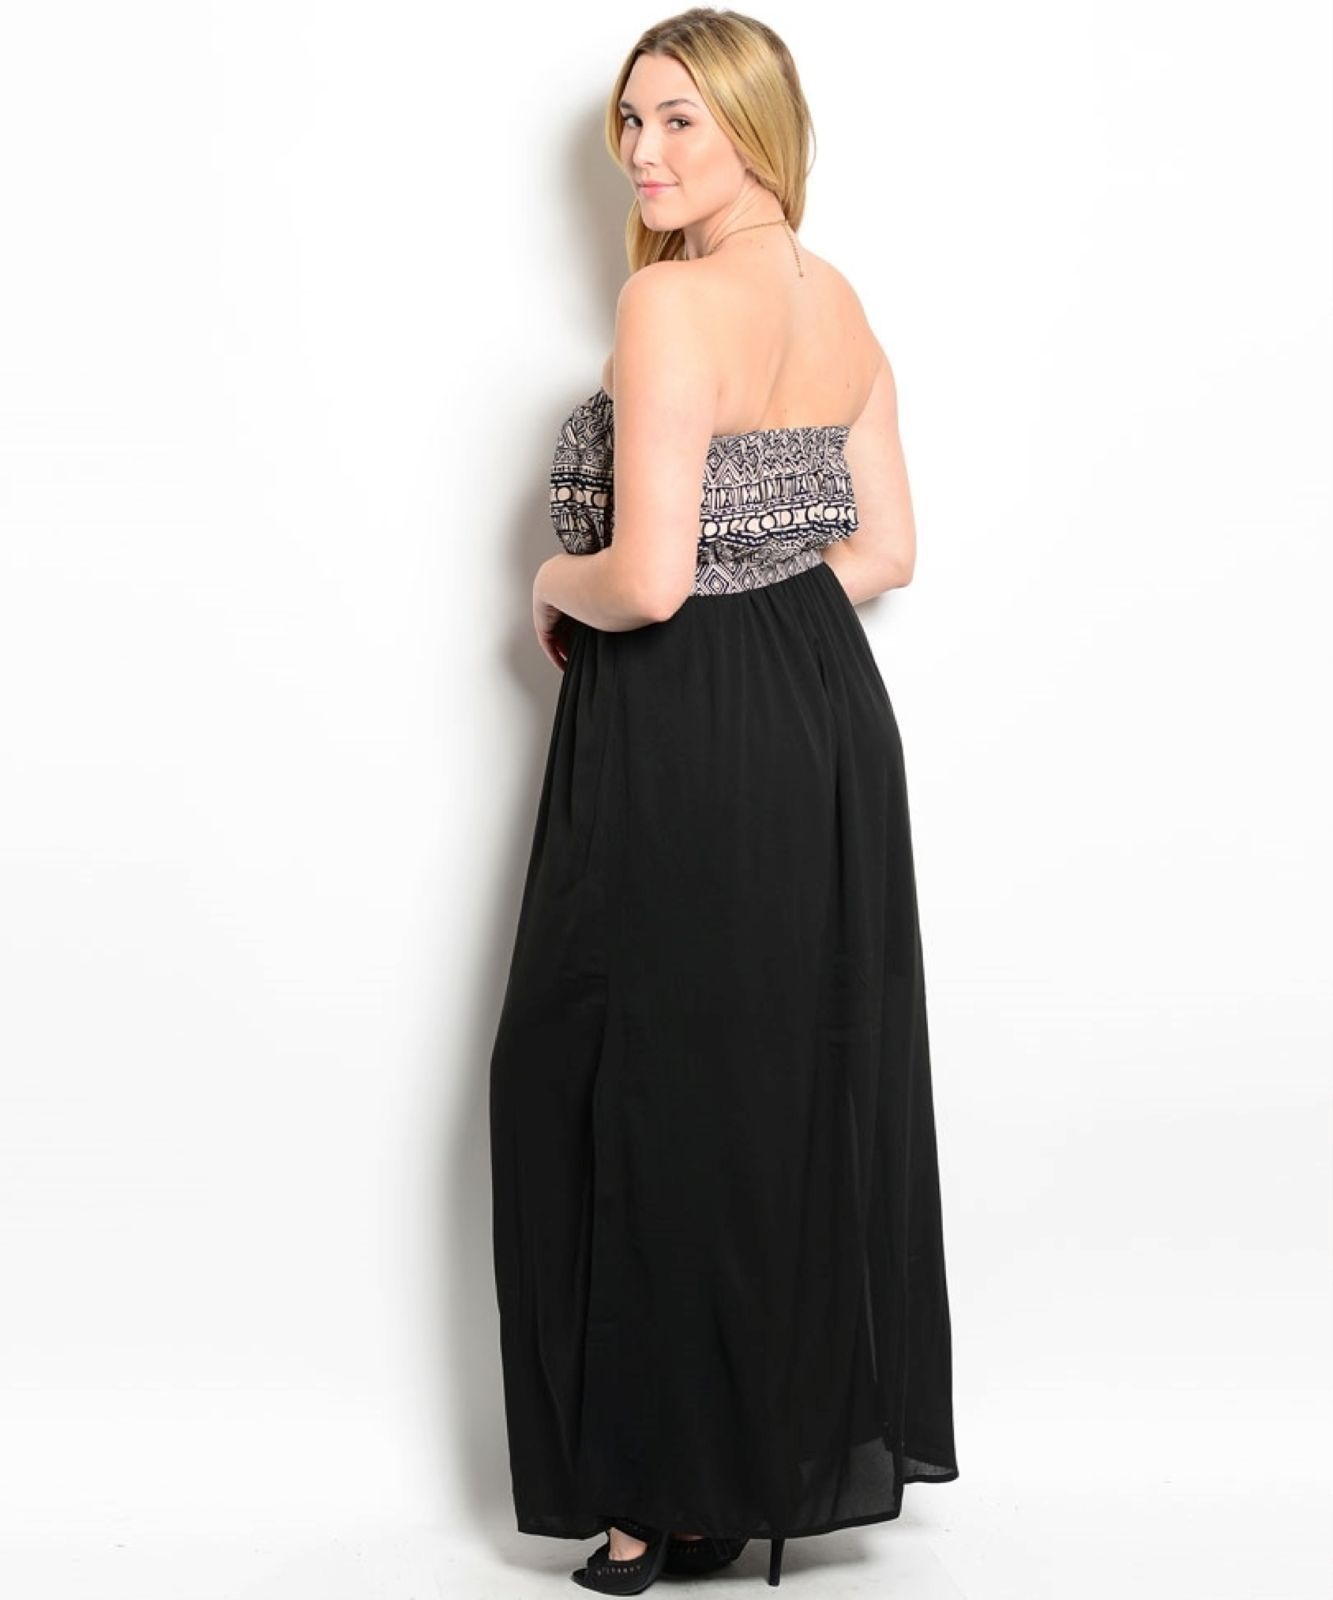 Image 1 of Sexy Strapless Black Party Cruise Maxi Dress/Taupe Tribal Print Top XL 2X or 3XL